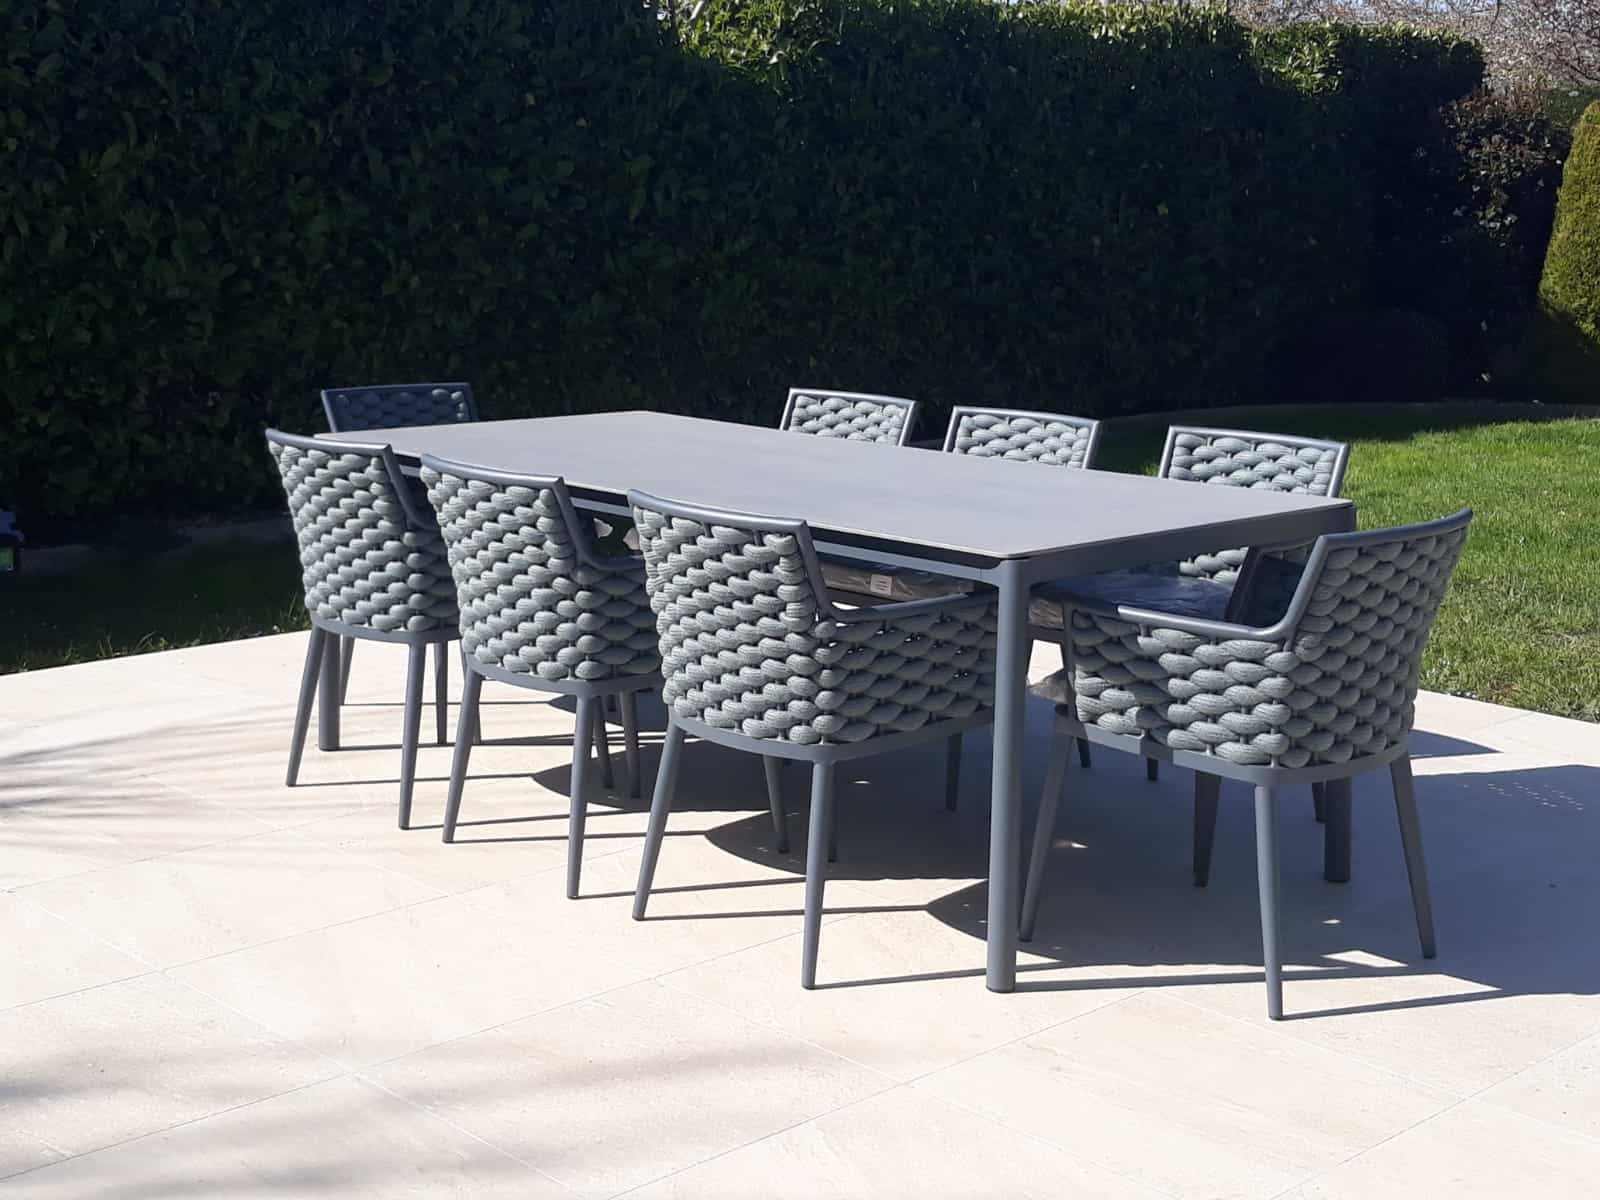 Leon dining set outdoor furniture for sale dublin ireland